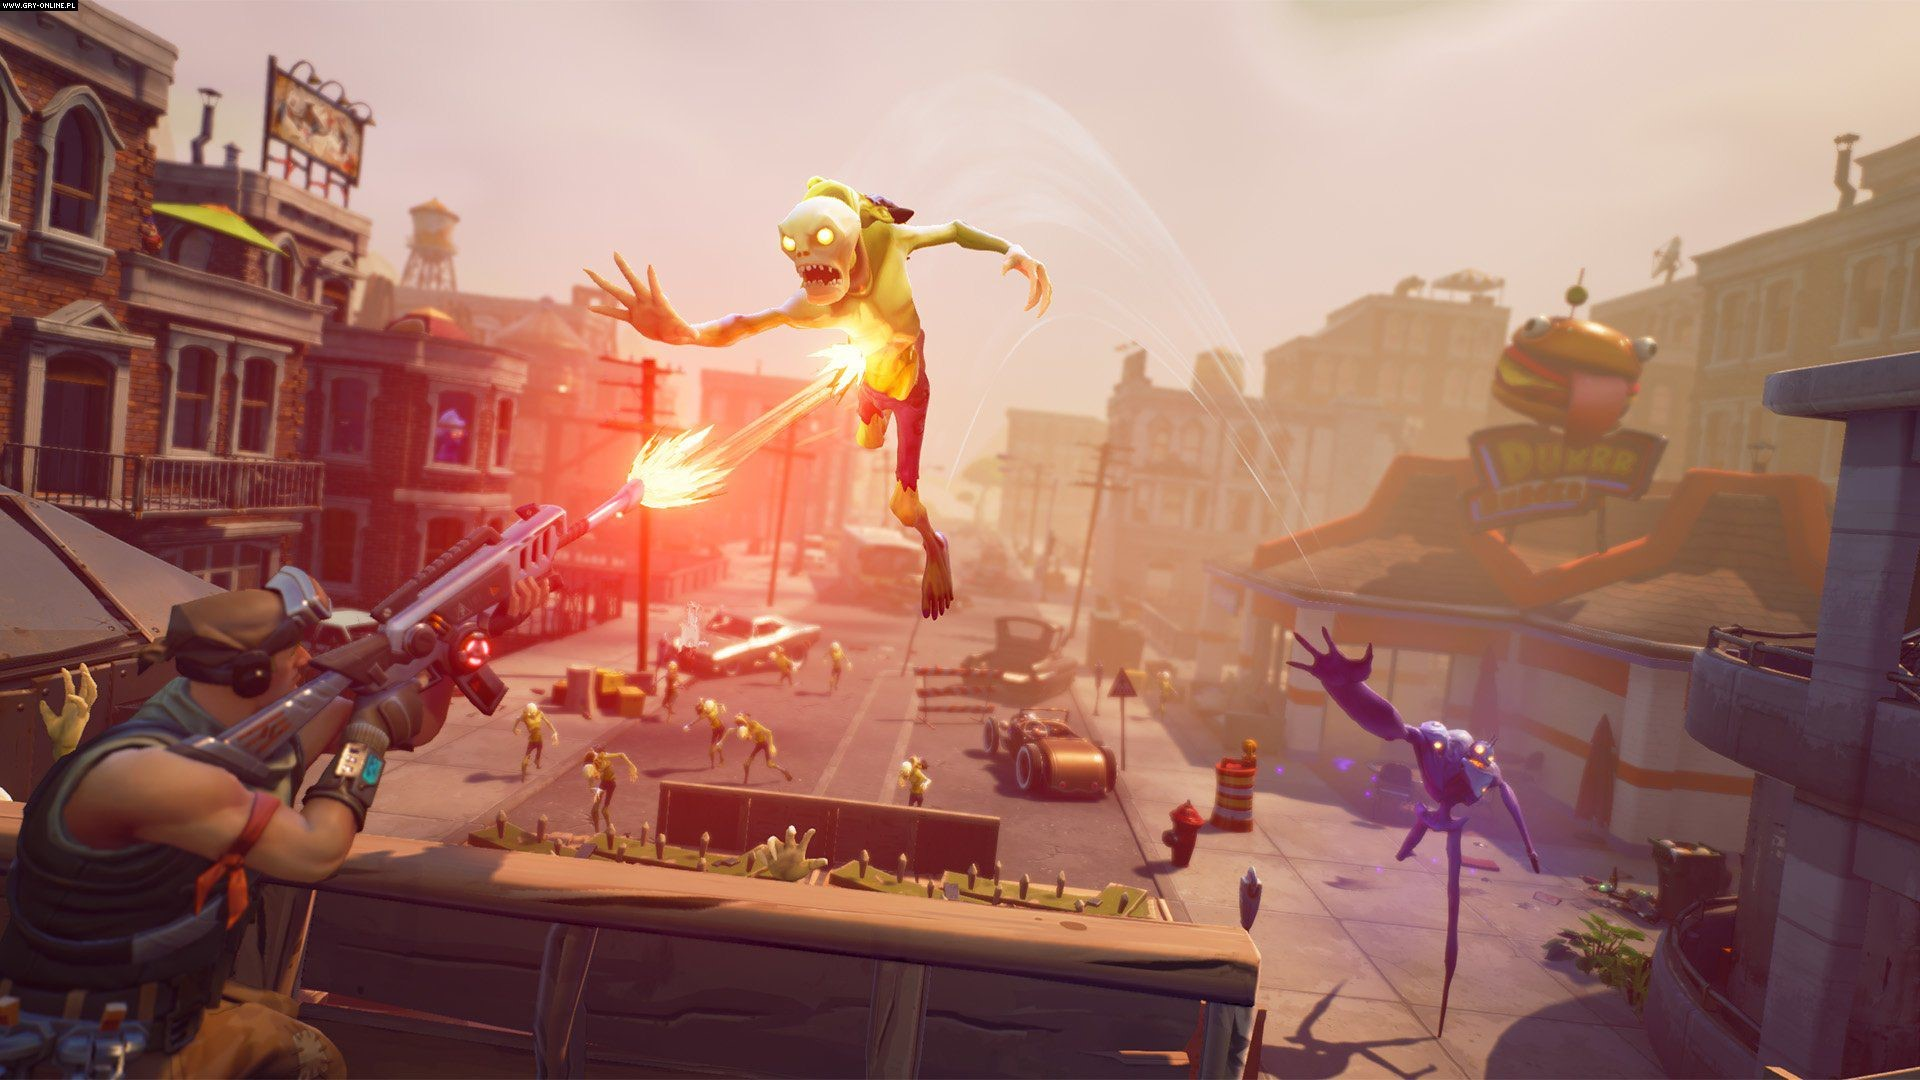 Fortnite Zombie Flying To Warrior HD Wallpaper